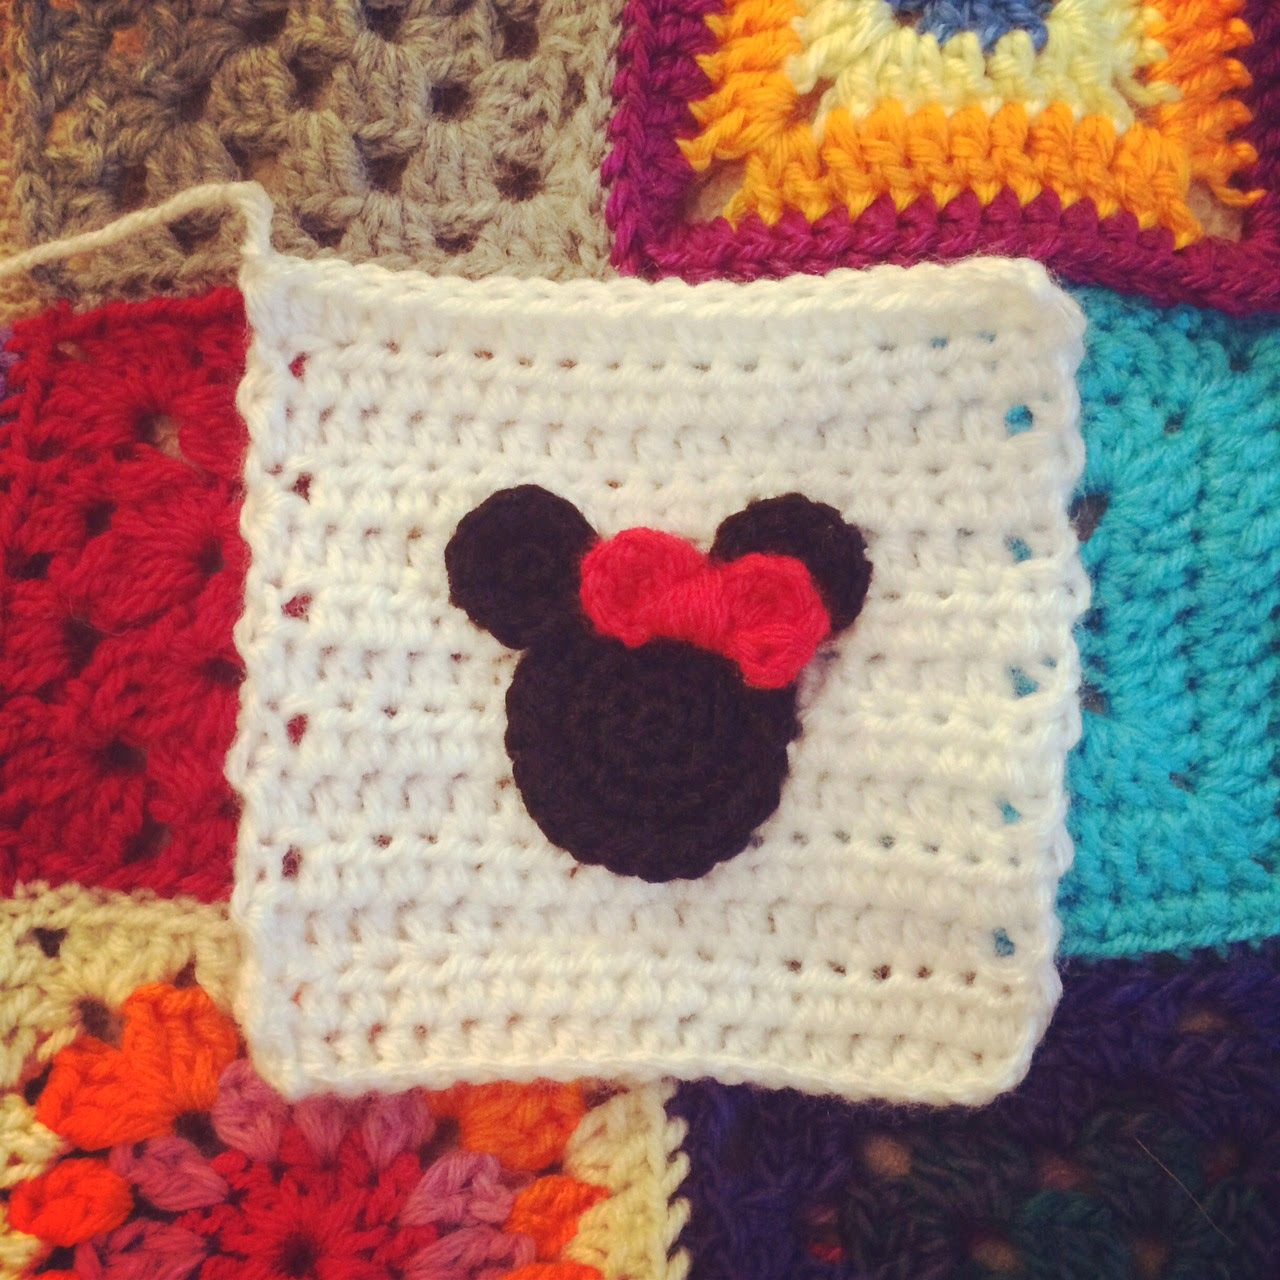 Minnie square (photo only, no pattern) | 2018 all crochet gadgets ...